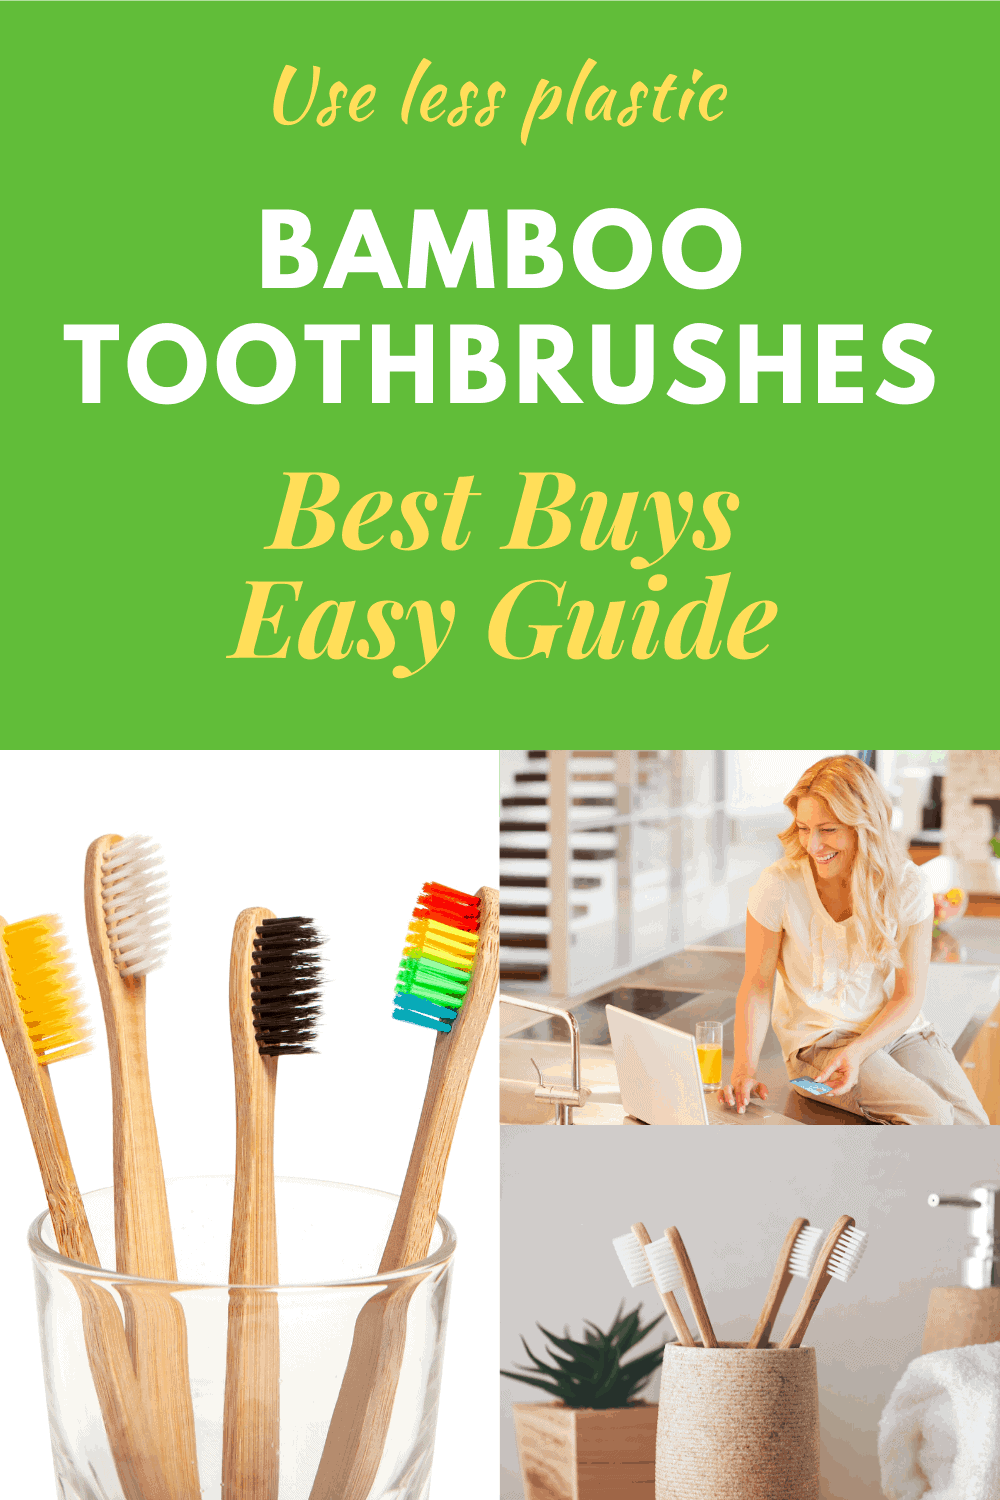 Bamboo Toothbrushes Best Buys